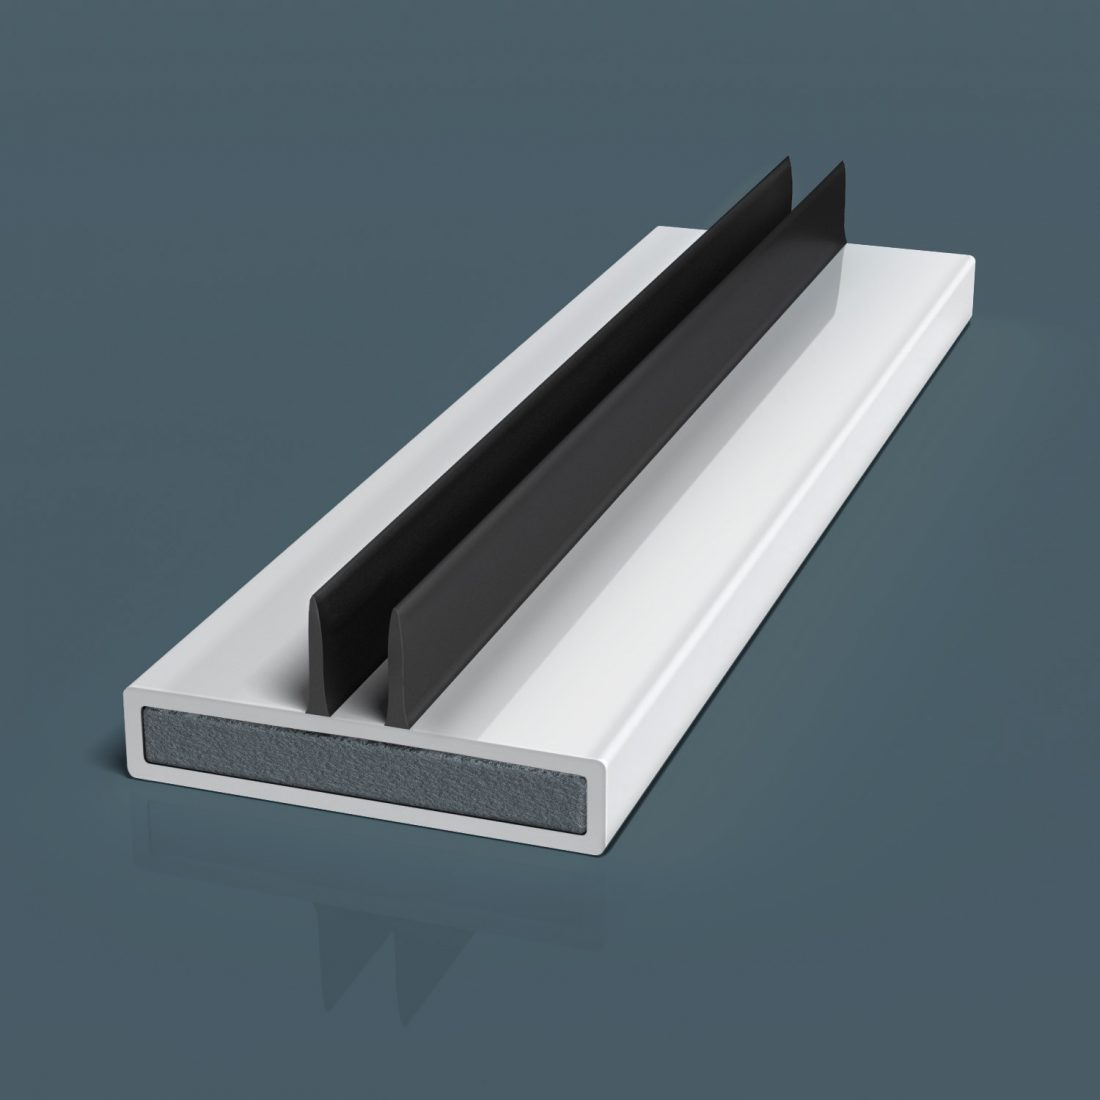 Flexifin Extruded Twin Centre Blade 500 Illustration